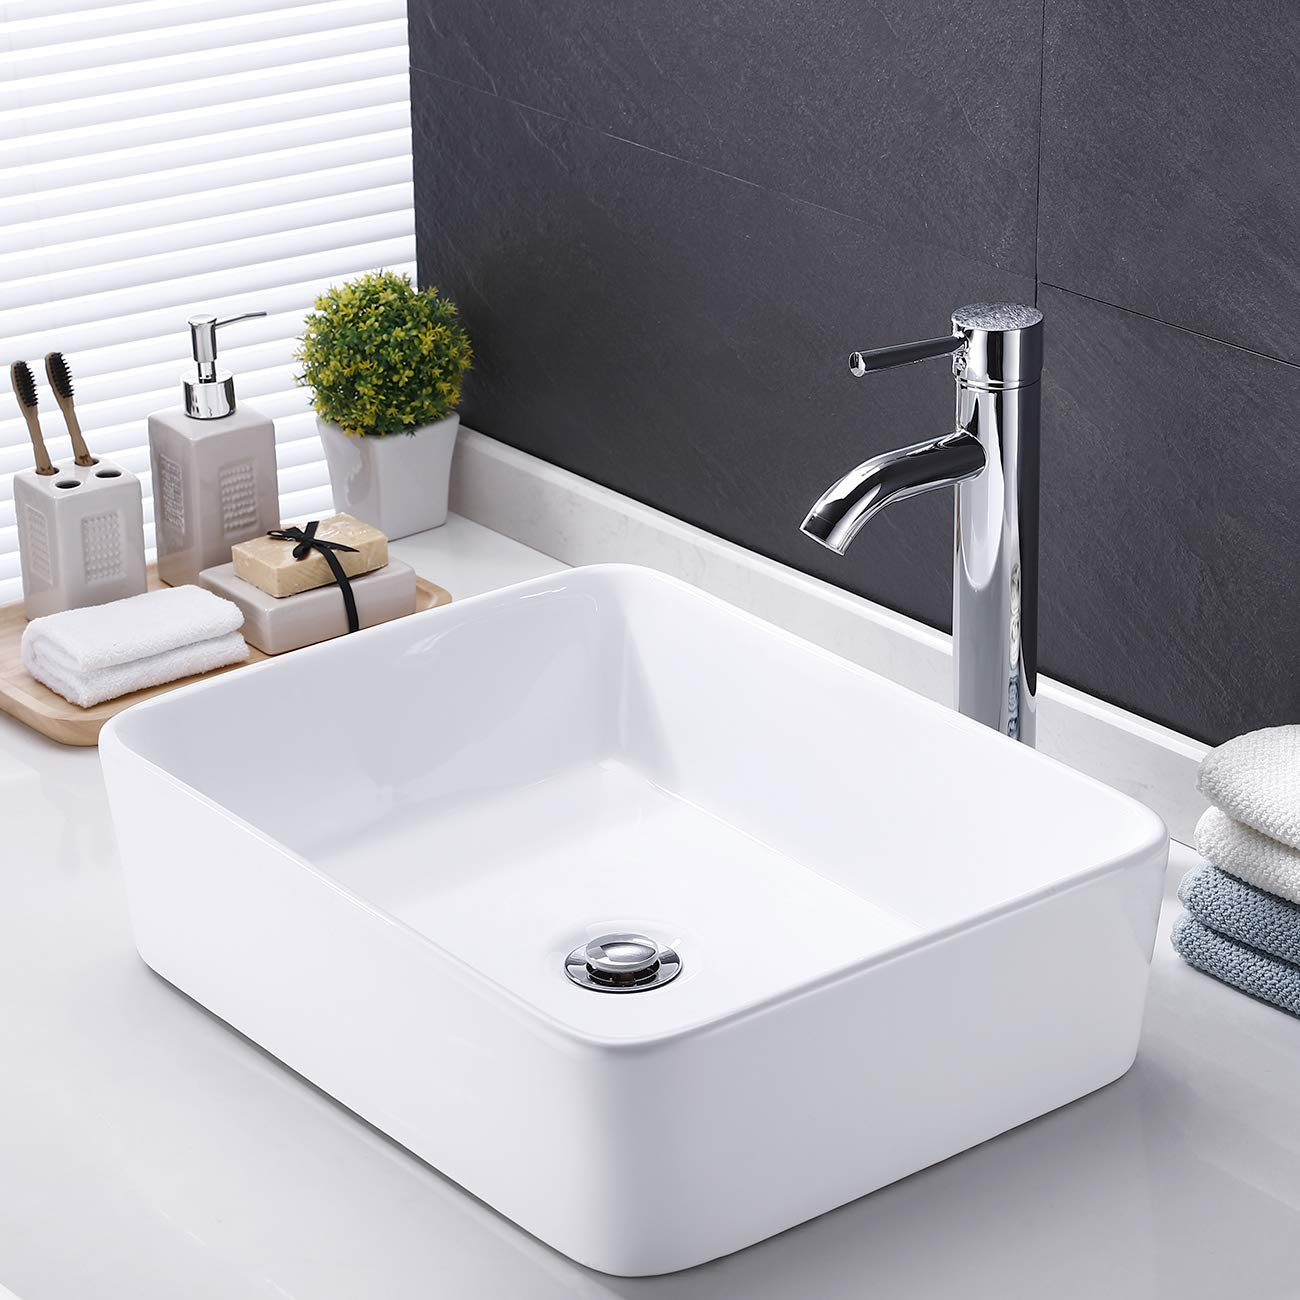 Astounding Kes Bathroom Vessel Sink 19 Inch White Rectangle Above Counter Countertop Porcelain Ceramic Bowl Vanity Sink Cupc Certified Bvs110 Download Free Architecture Designs Viewormadebymaigaardcom